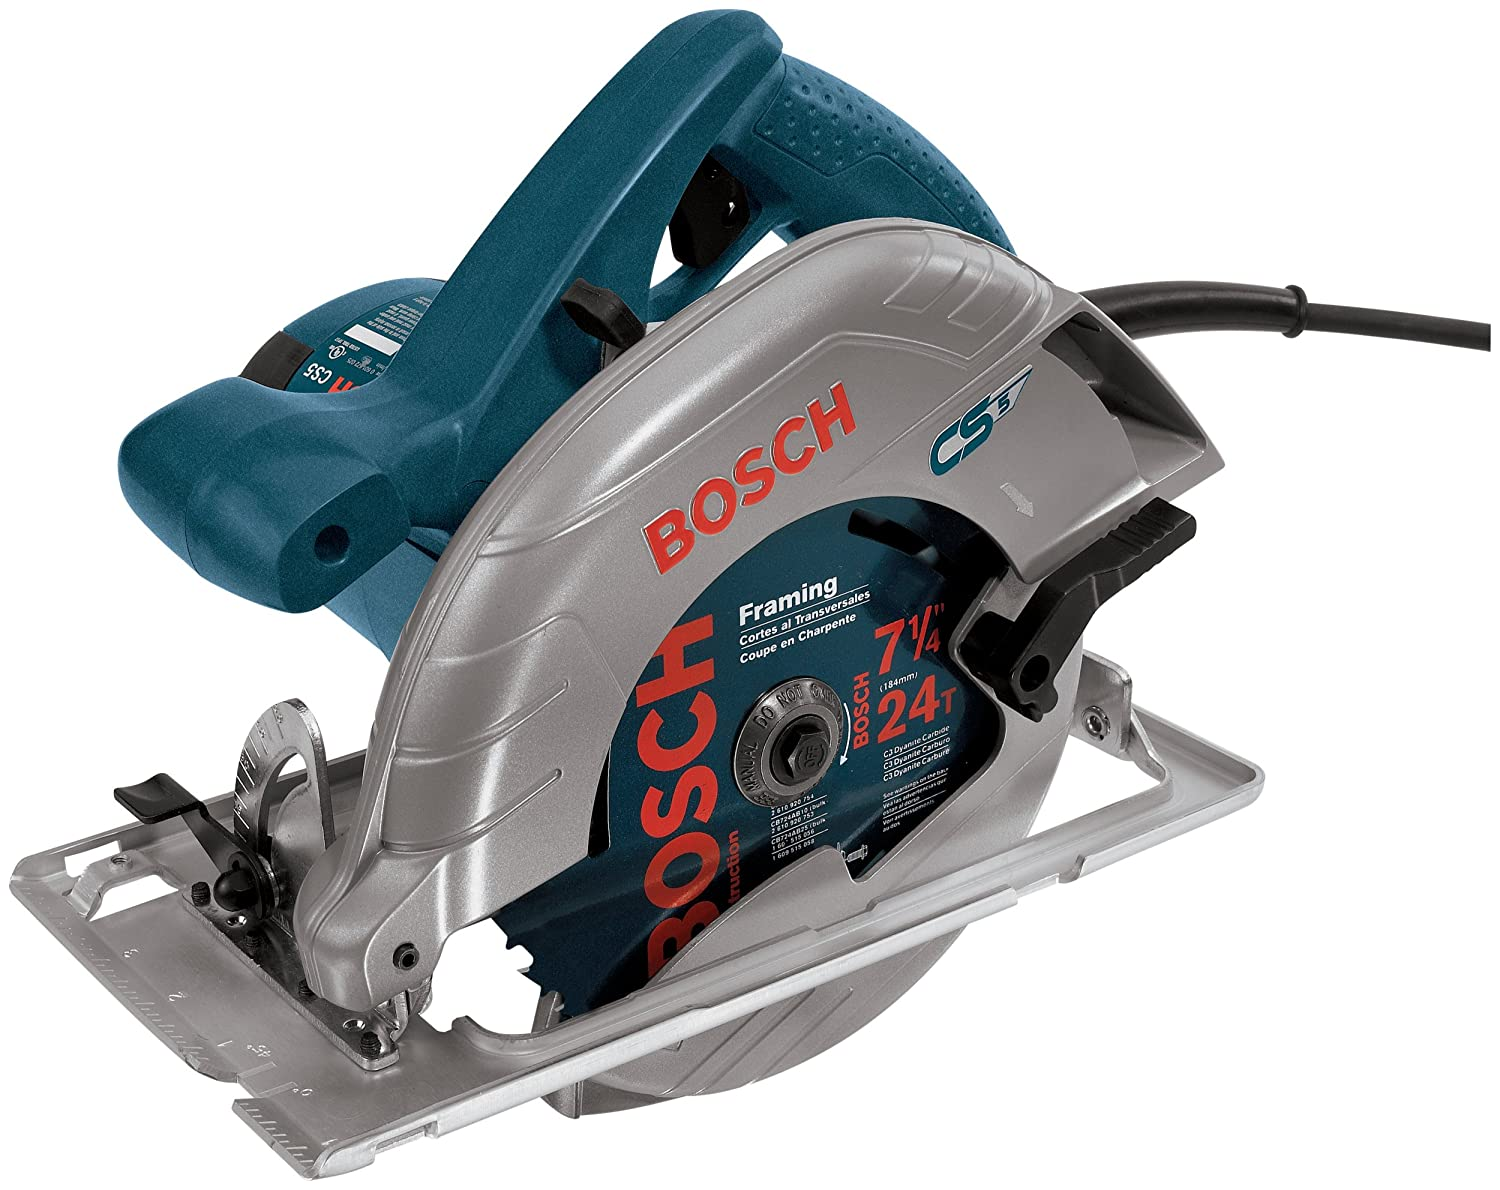 Your 2018 guide to the left handed circular saw bosch cs5 120 volt 7 14 inch circular saw greentooth Images